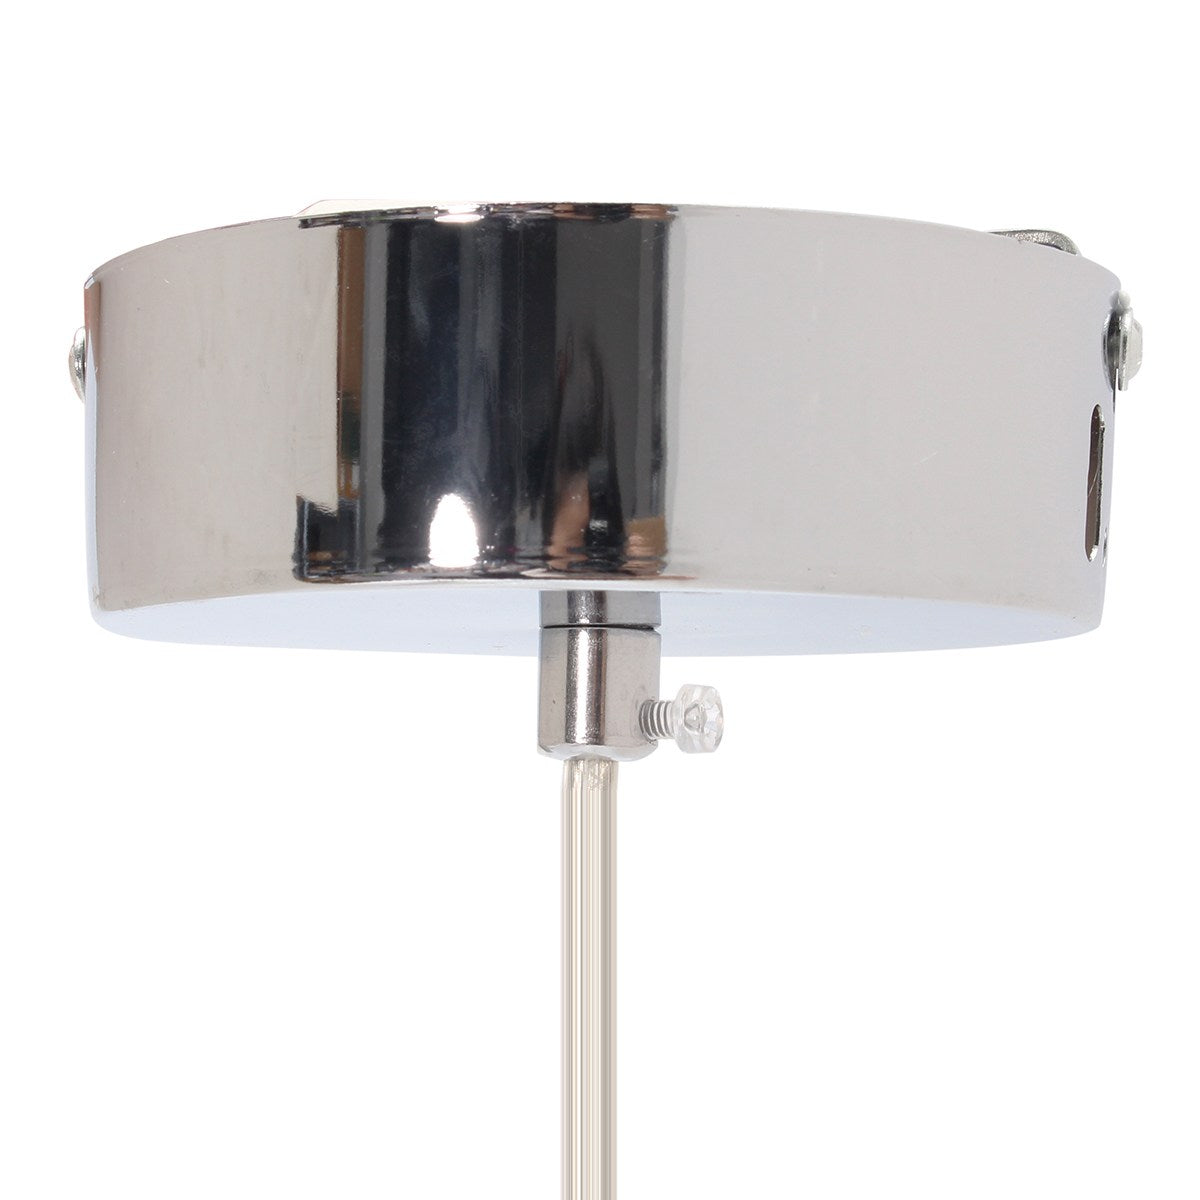 southern farmhouse on amazon fixtures under lamp made light simple